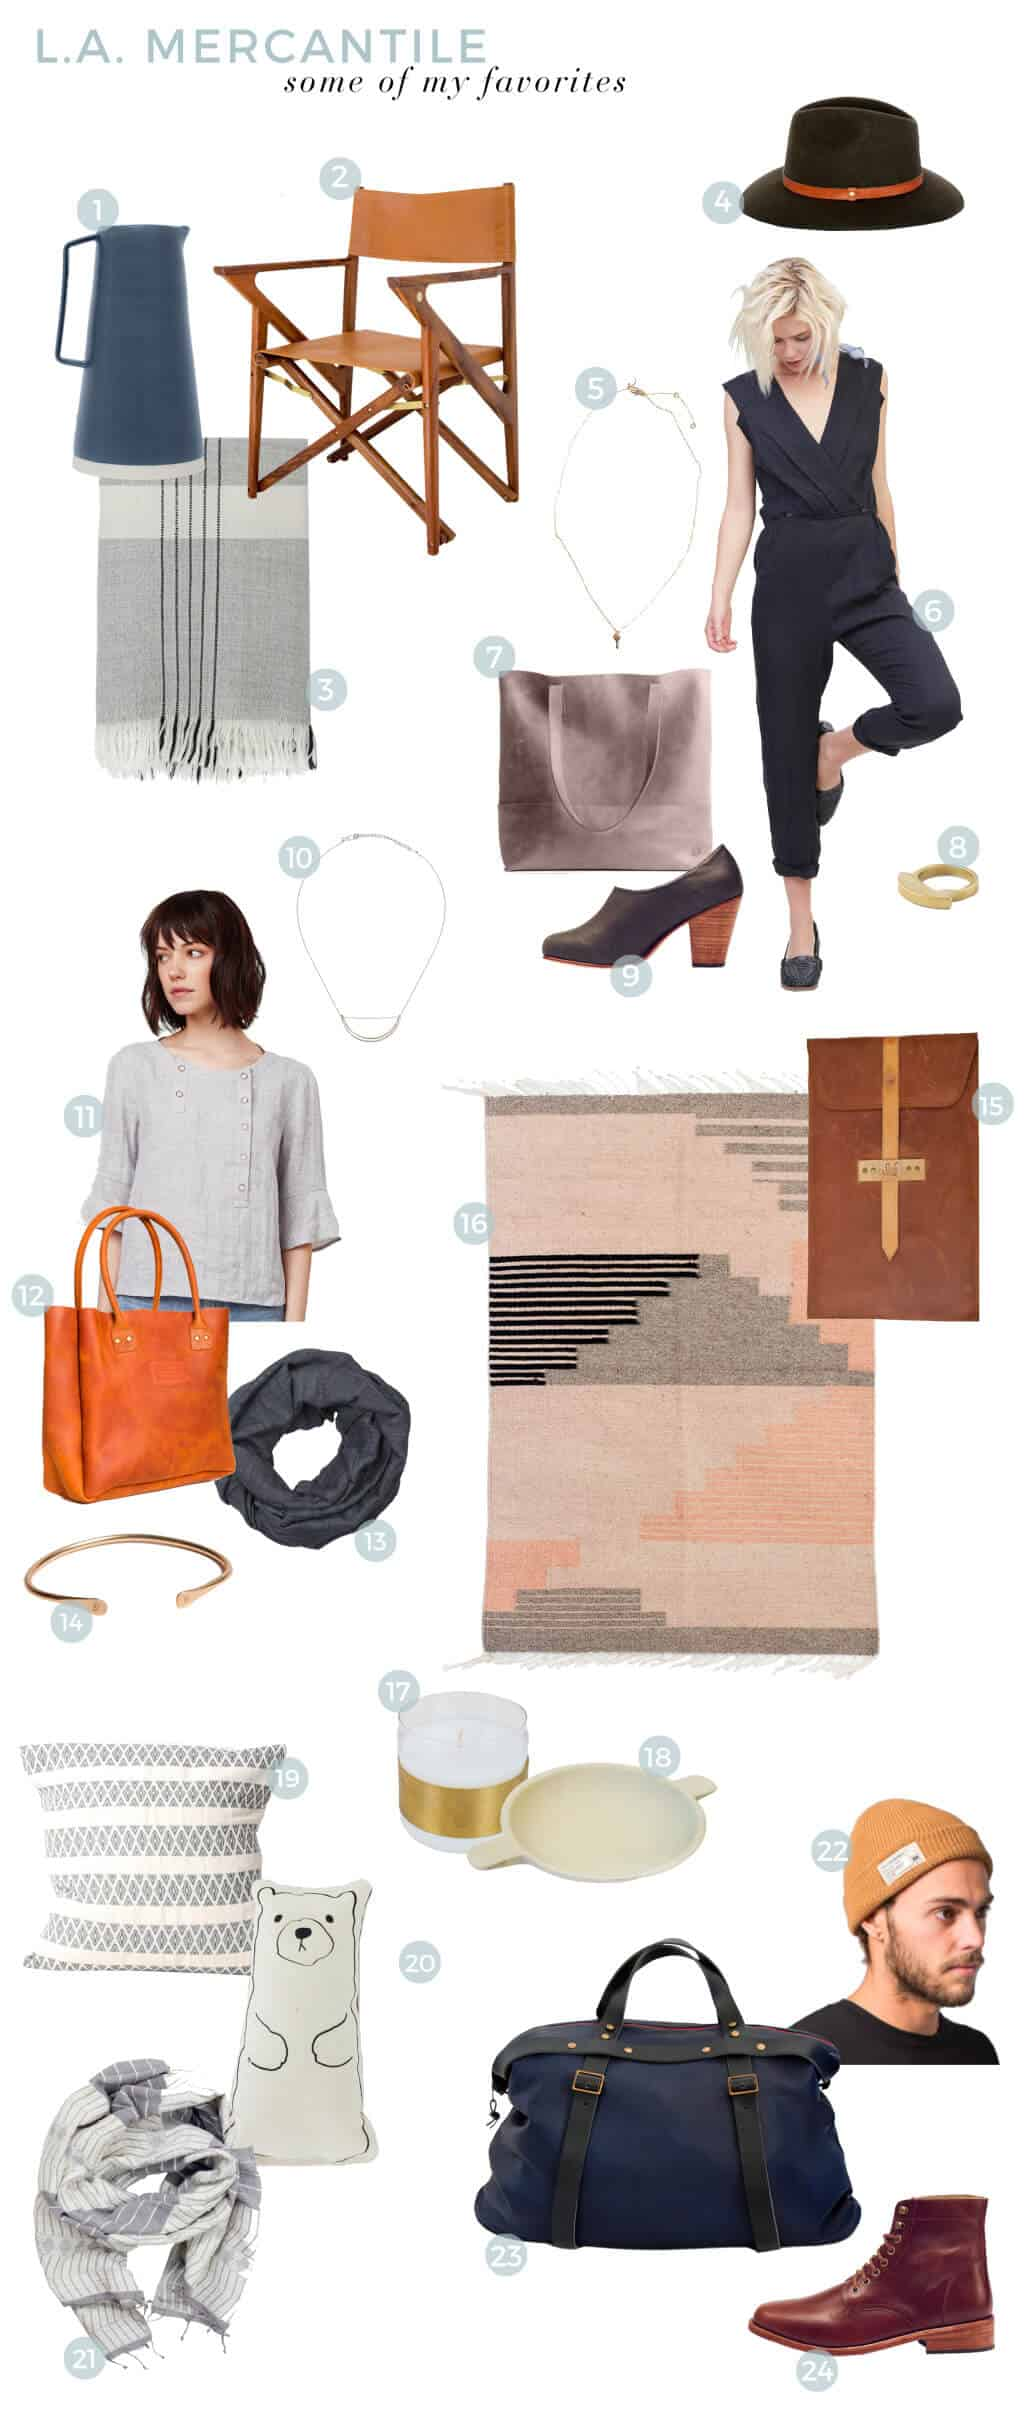 emily-henderson_la-mercantile_some-of-my-favorites_gift-guide_roundup